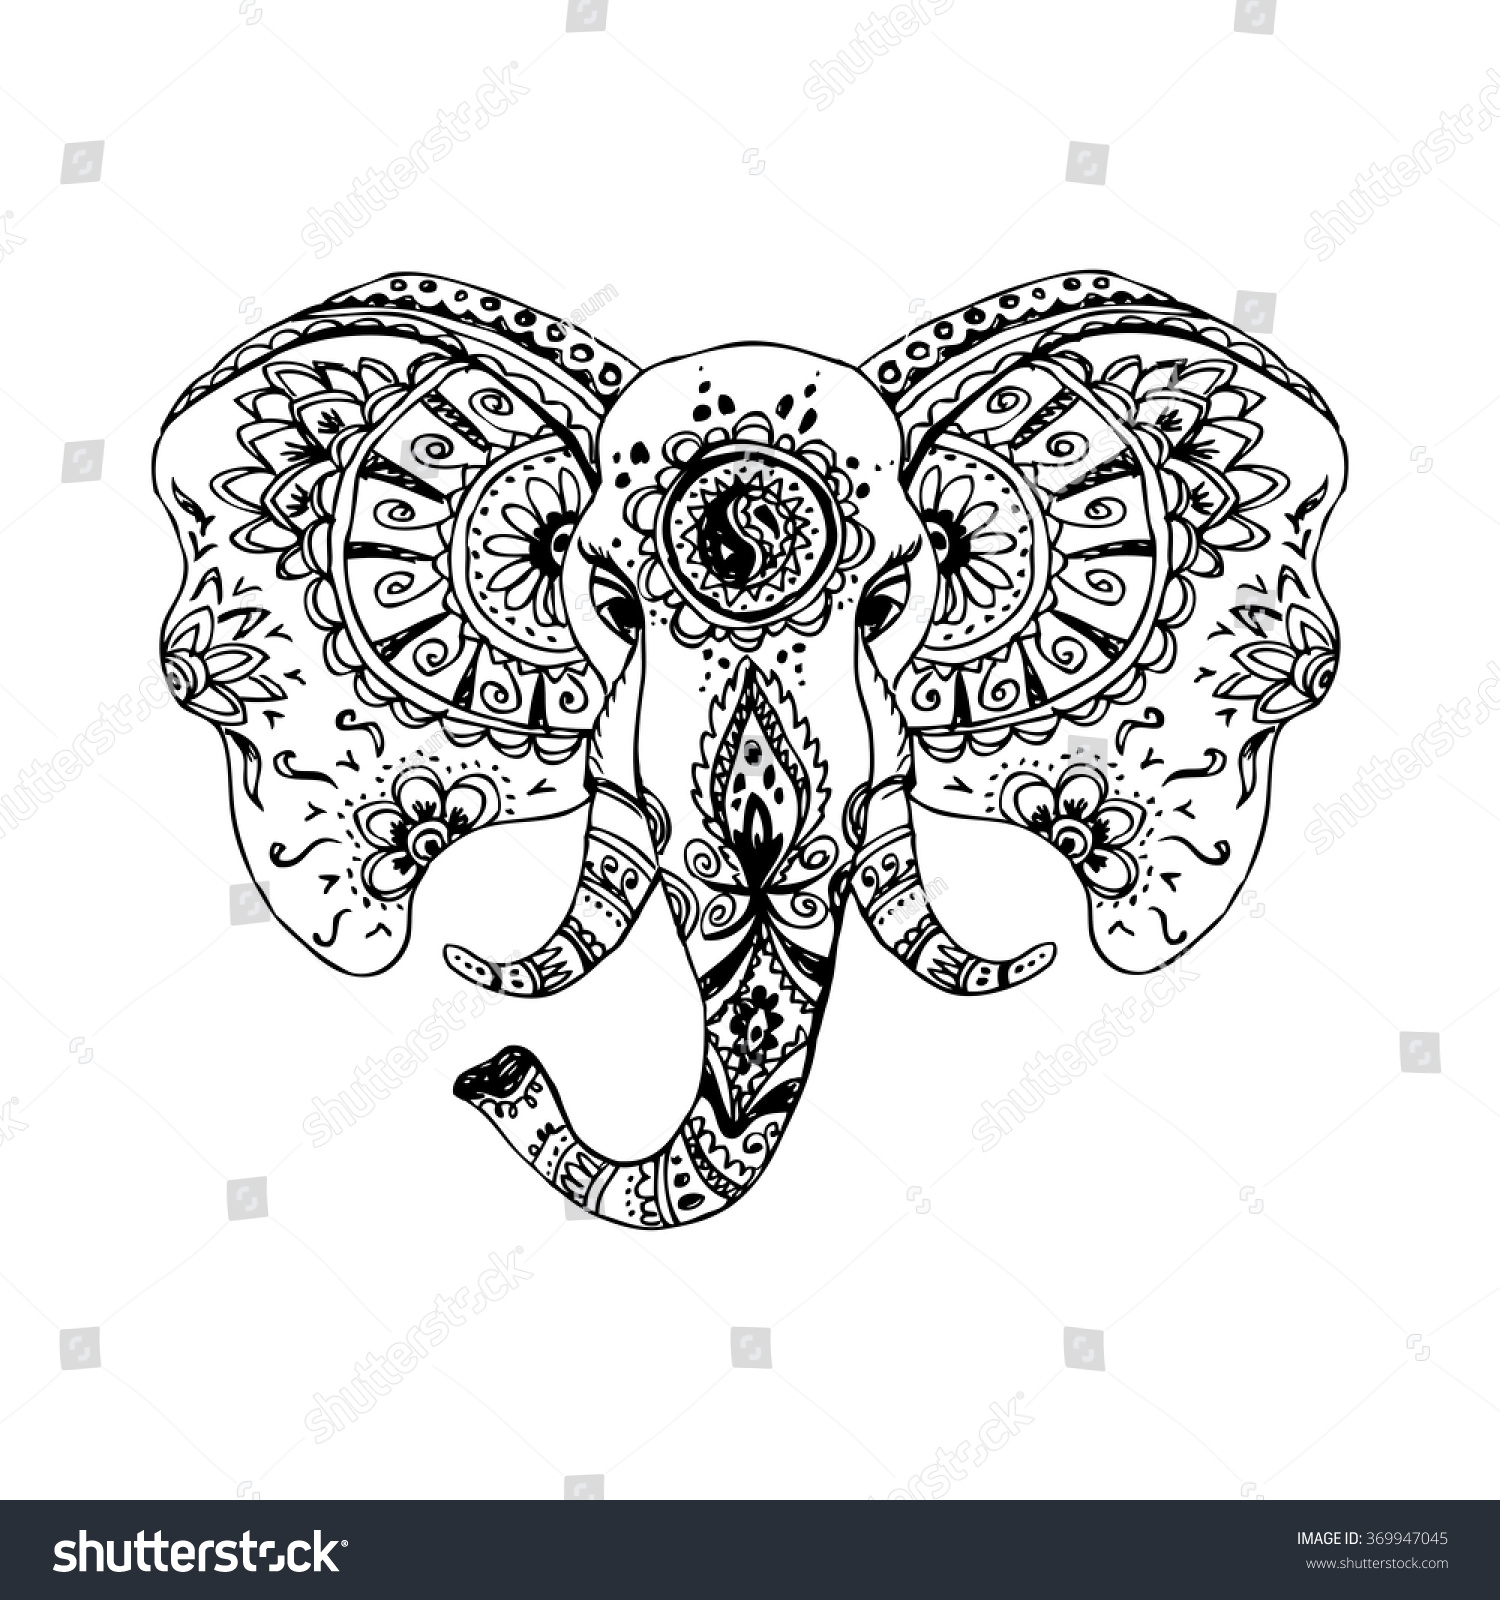 Vector Abstract Elephant In Indian Style MehndiVector Hand Drawing Isolated On White Background